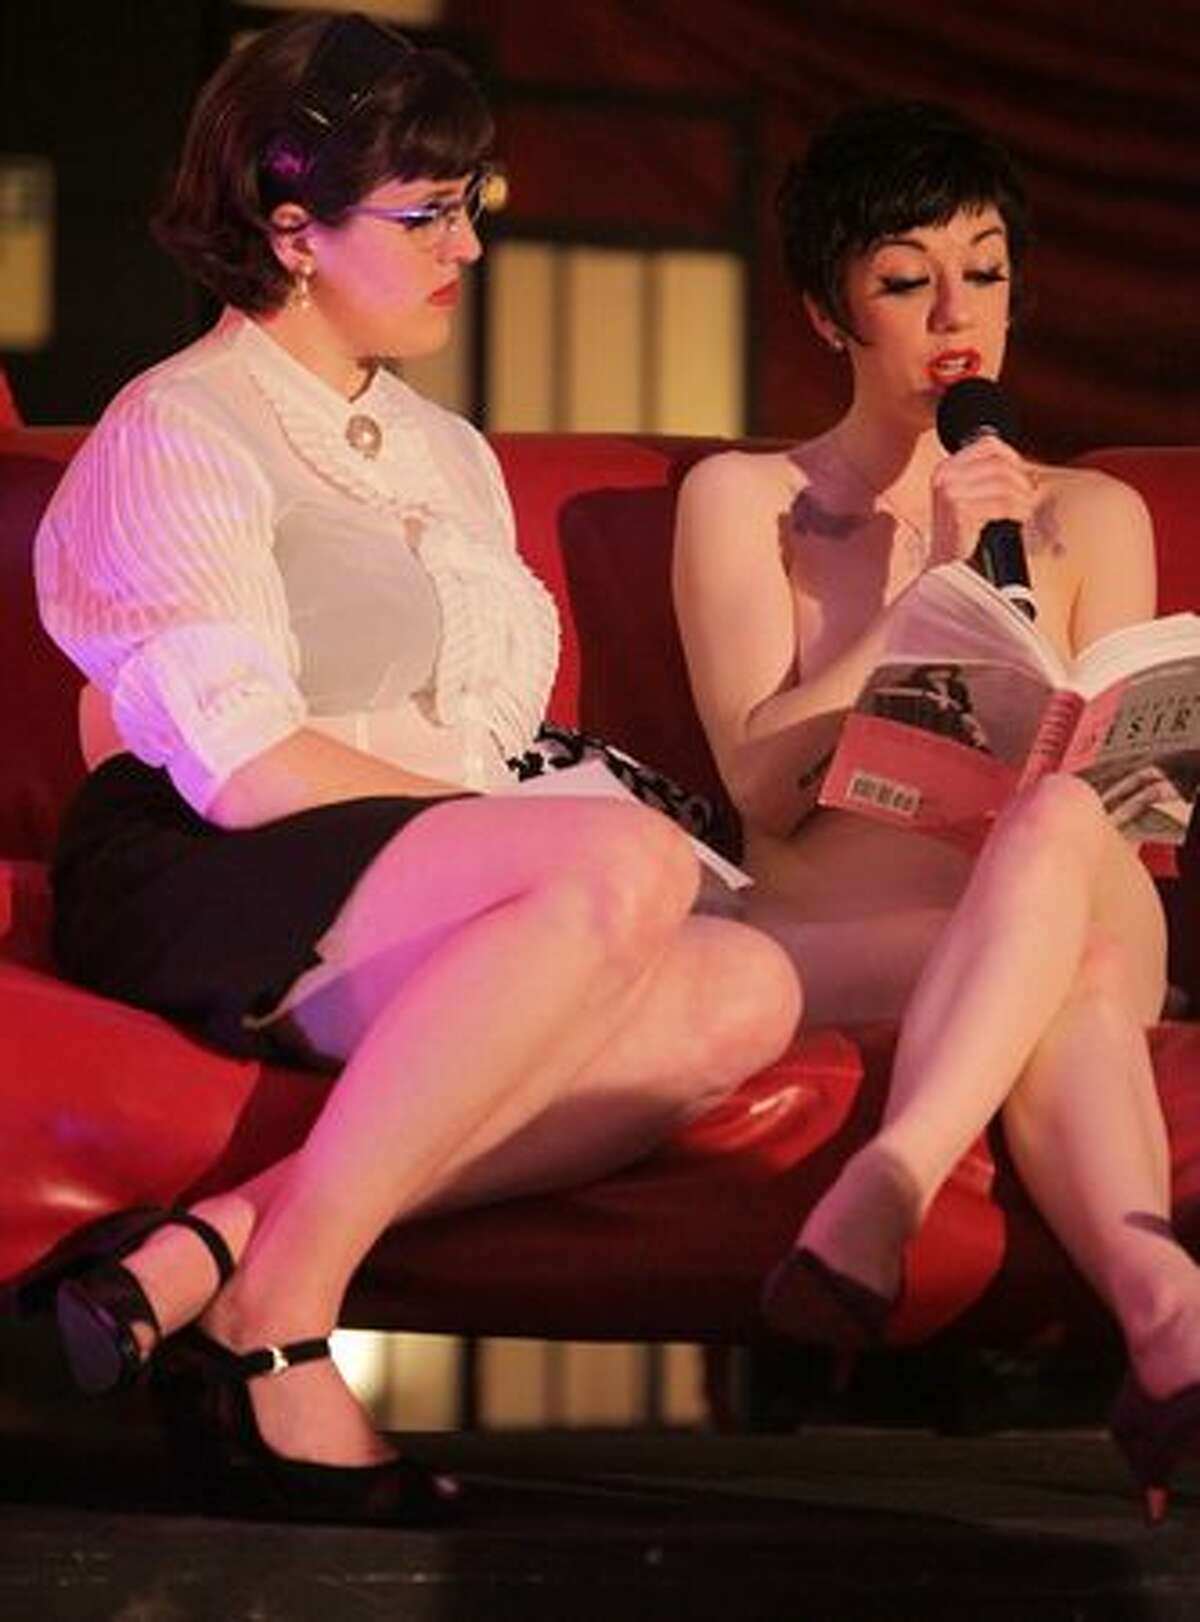 Elsa Von Schmaltz, left, and Polly Wood of Naked Girls Reading share some literature with an audience during the Erotic Art Festival on Friday April 30, 2010 at the Seattle Center Exhibition Hall.